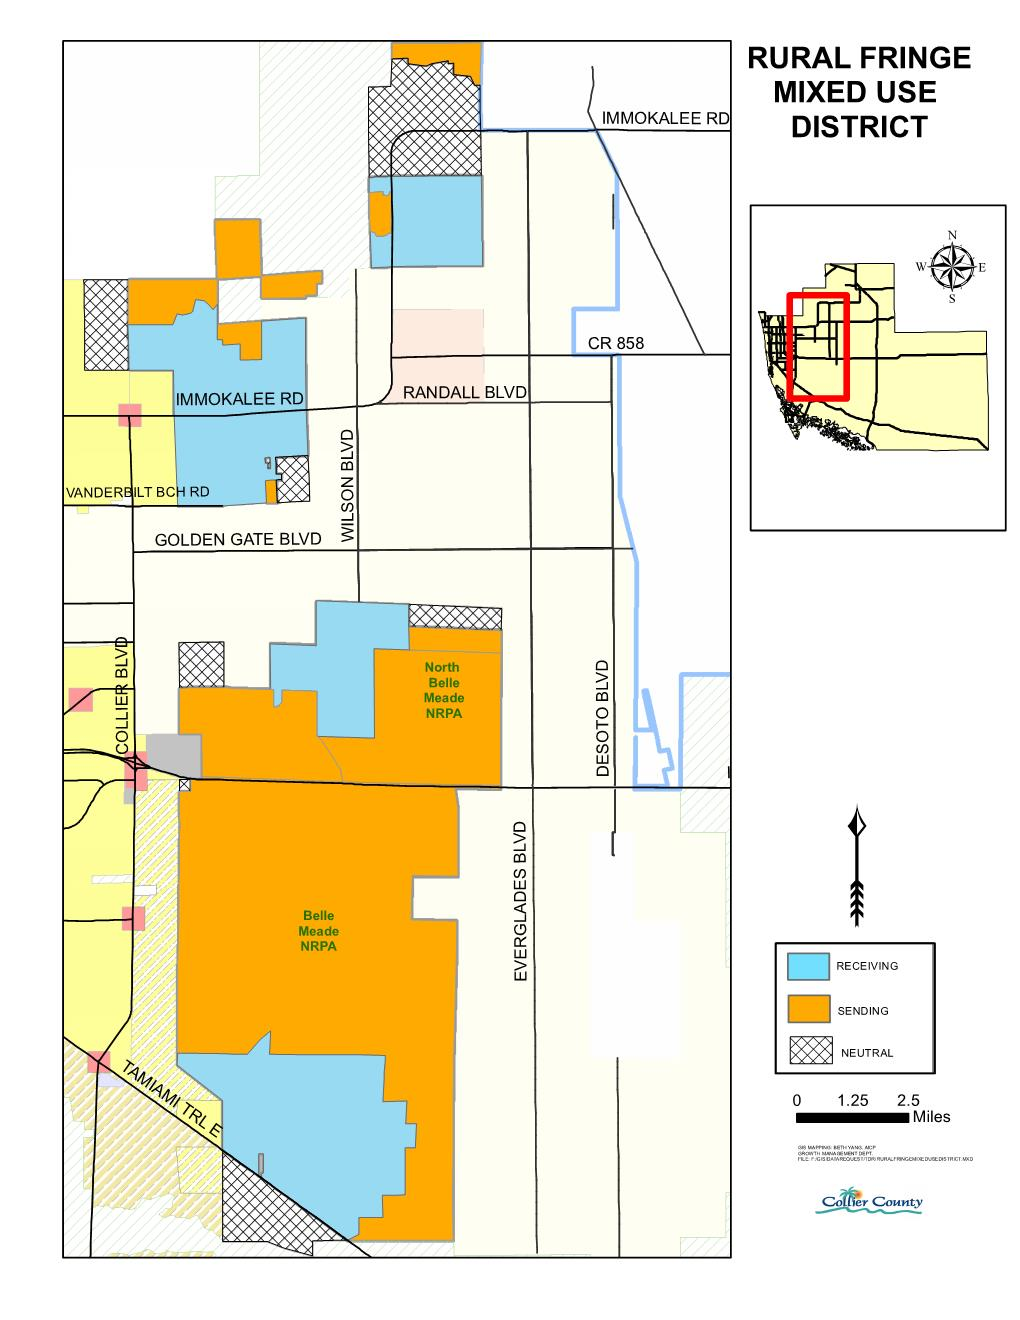 Rural Fringe Mixed Use District map